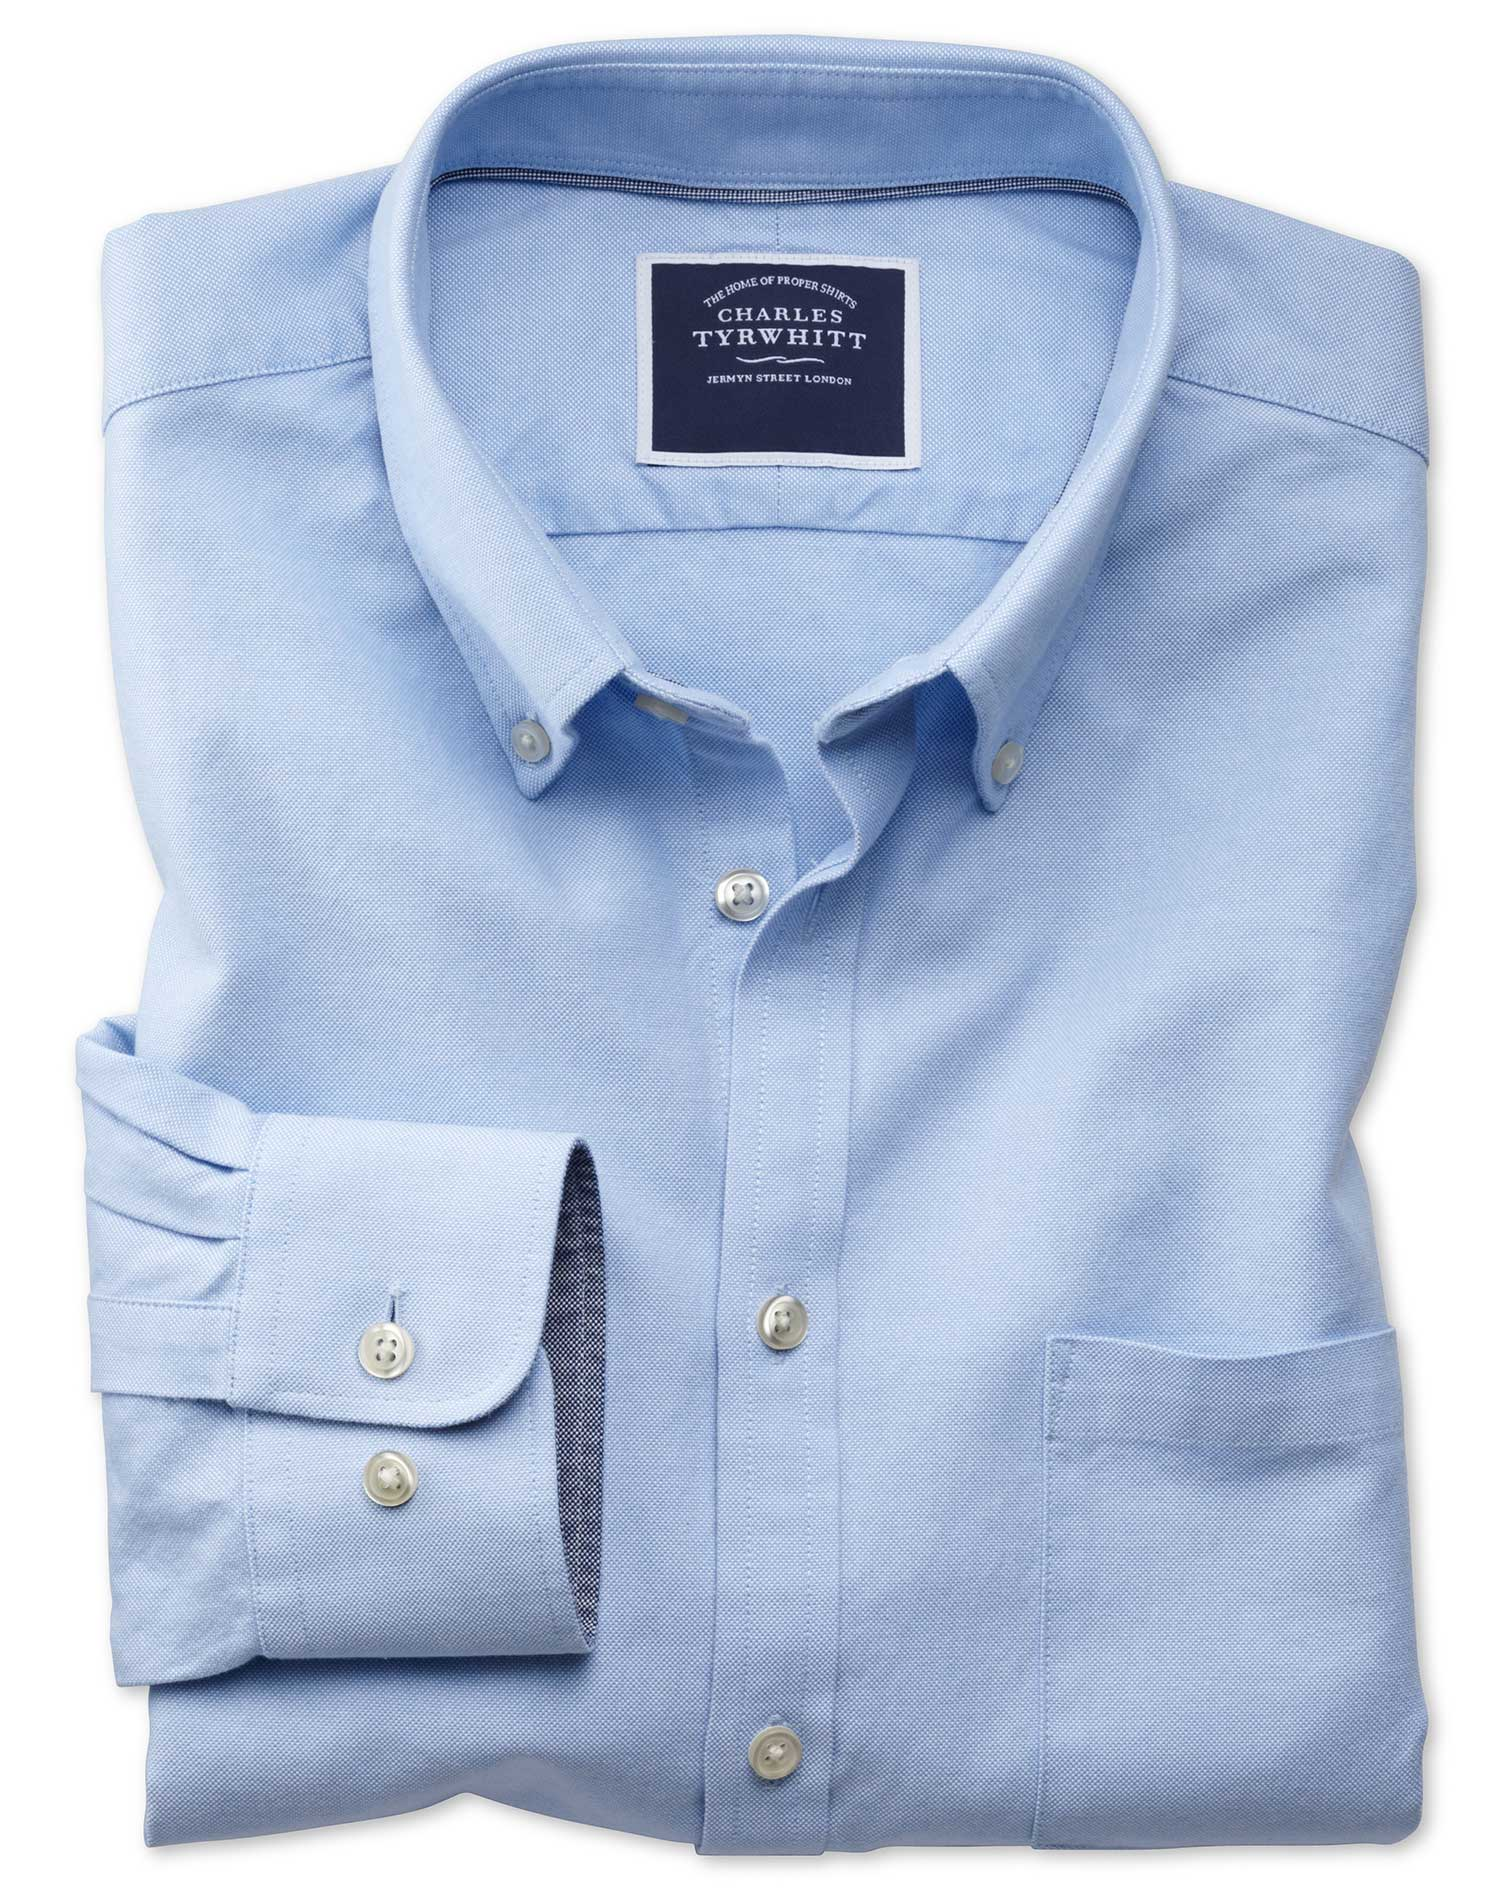 Extra Slim Fit Button-Down Washed Oxford Plain Sky Blue Cotton Shirt Single Cuff Size Large by Charl